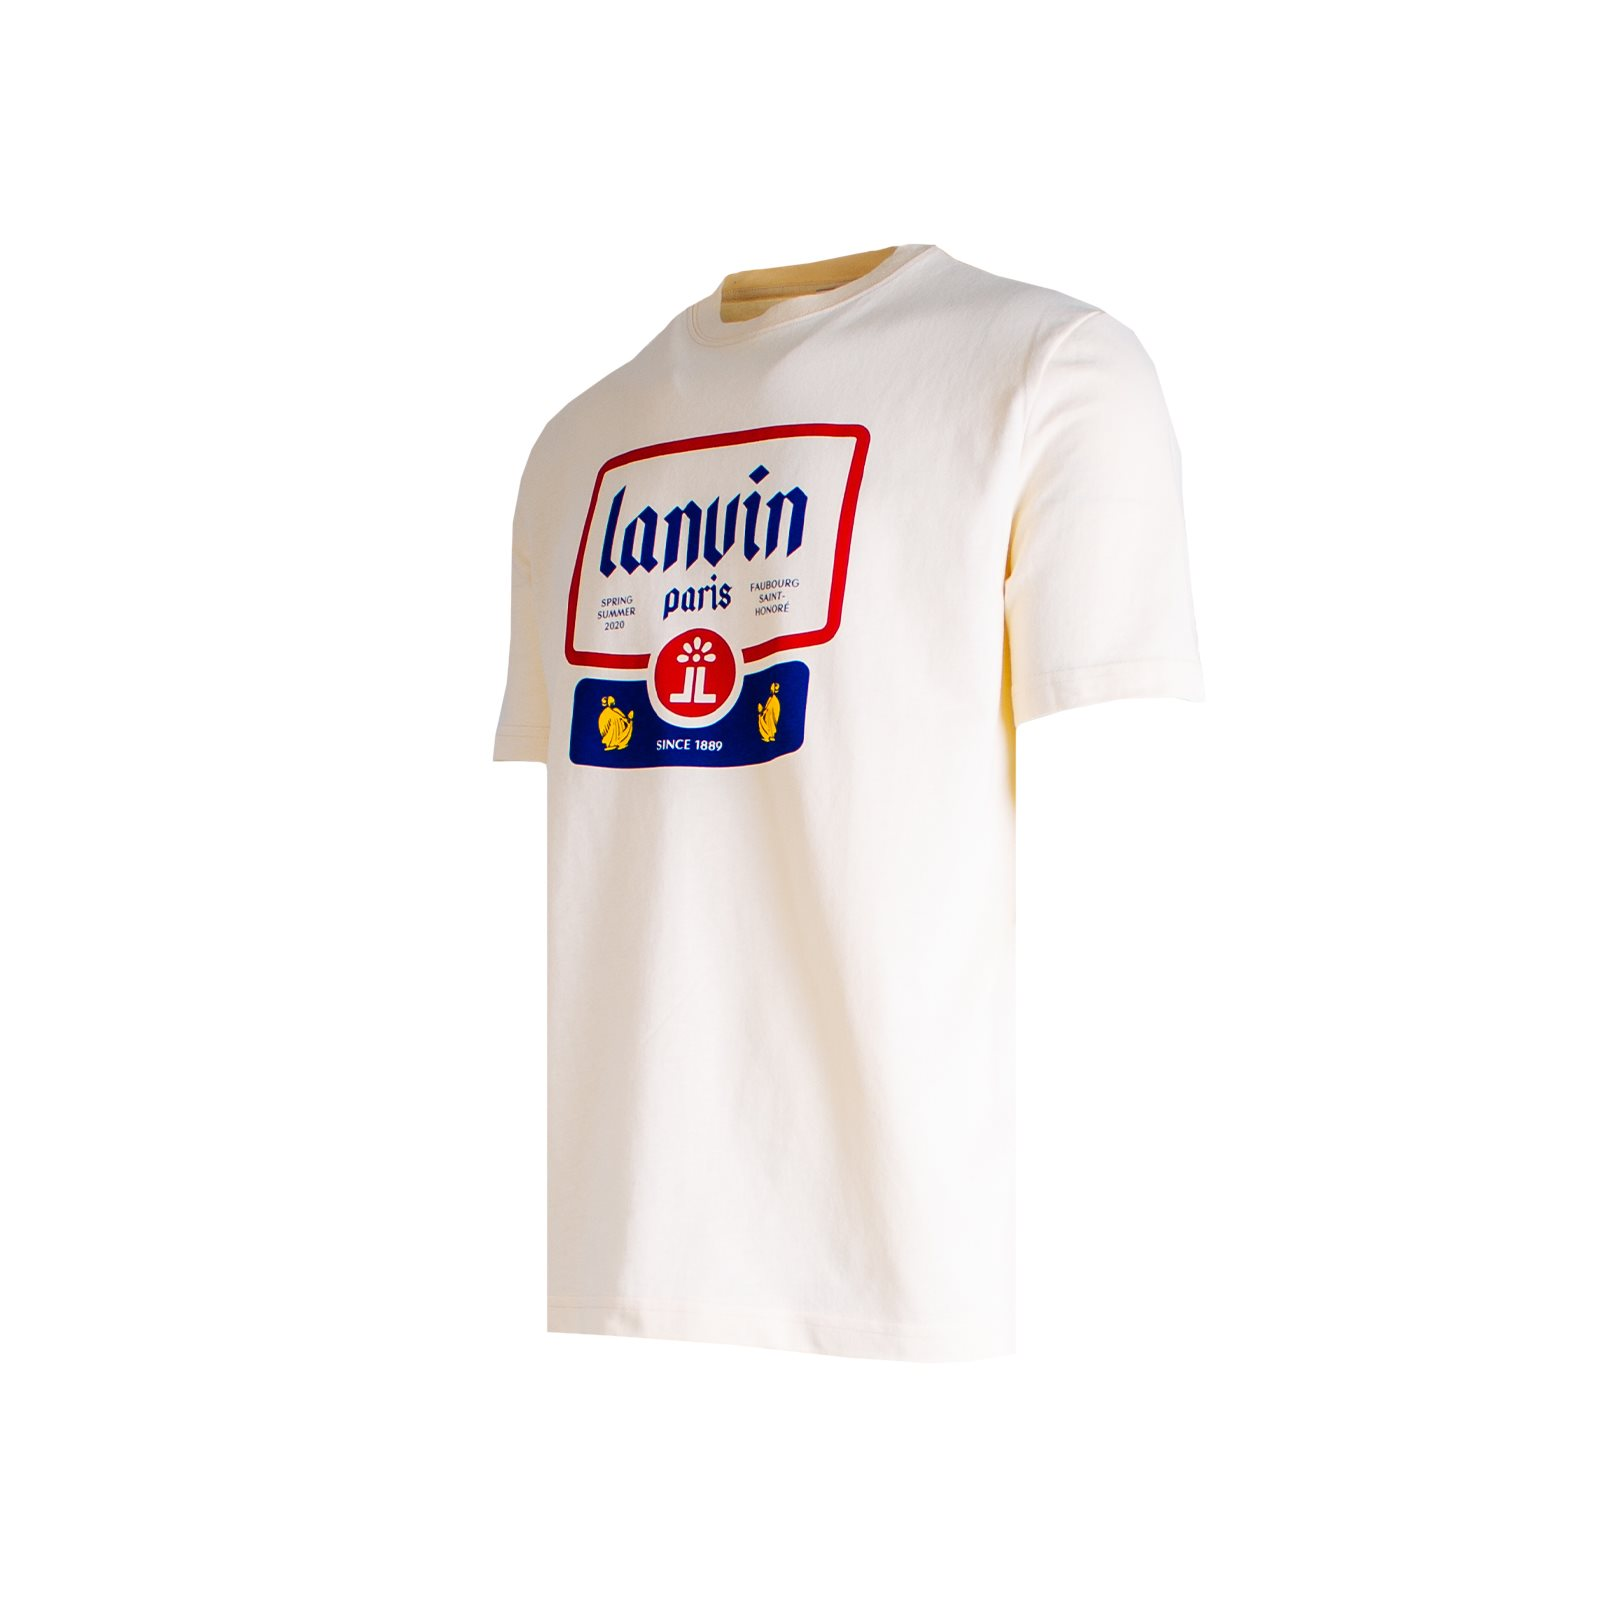 Lanvin Paris T-shirt 2